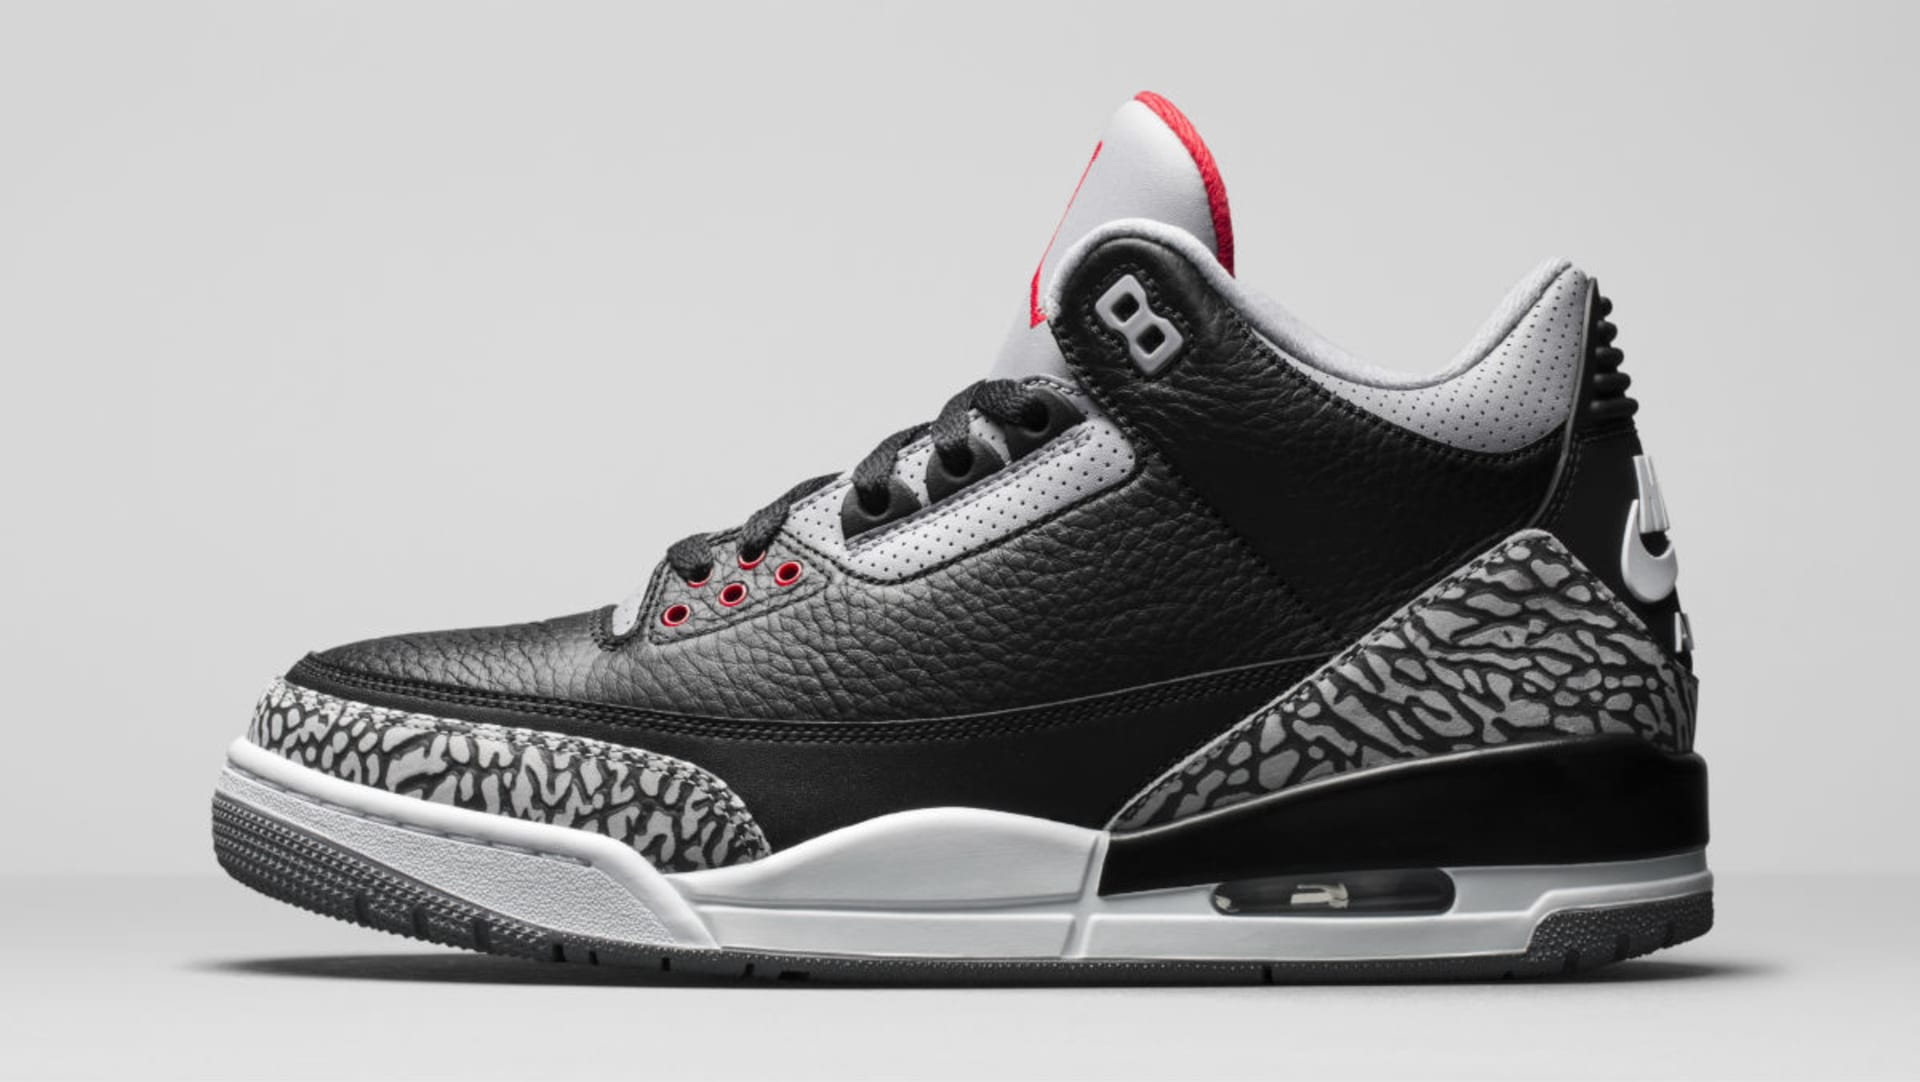 676ea5a18d67 Air Jordan 3 III Black Cement Release Date 854262-001 Profile